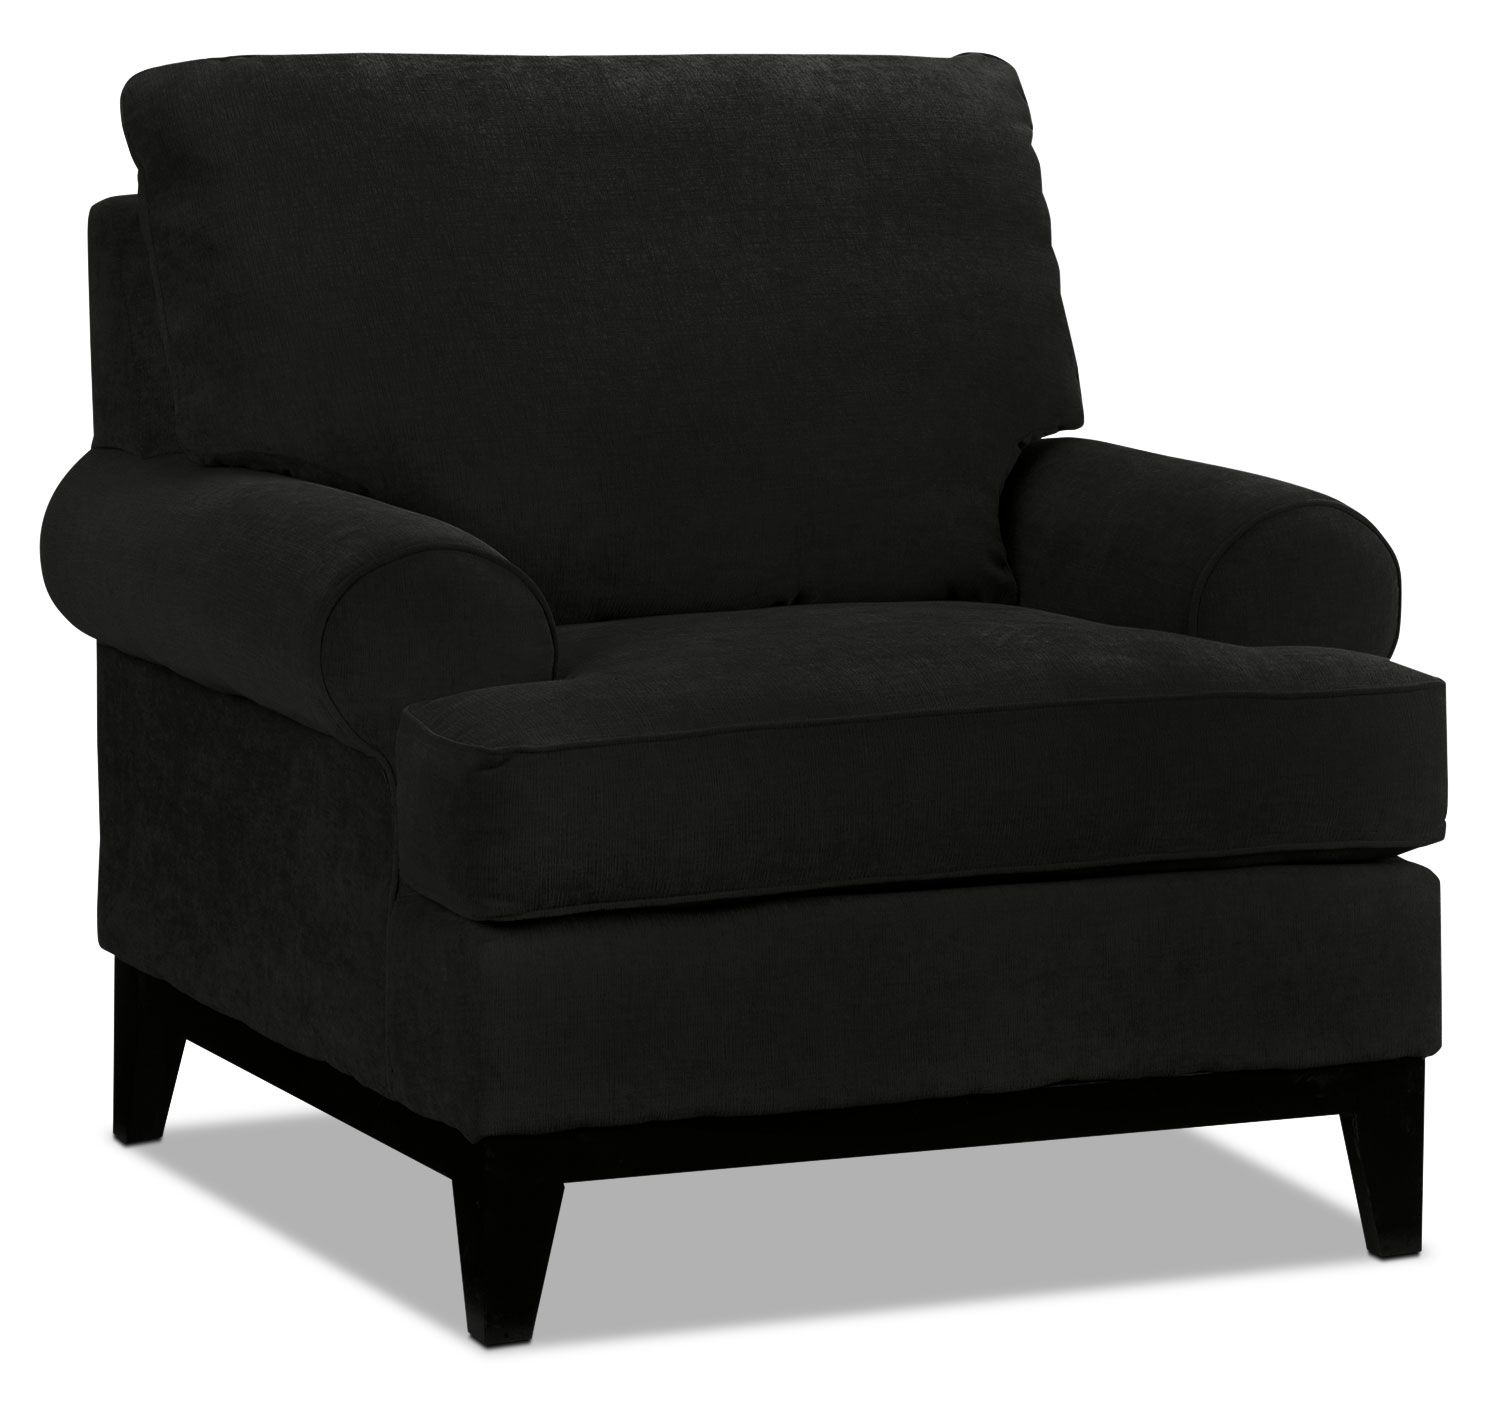 Living Room Furniture - Crizia Chair - Black